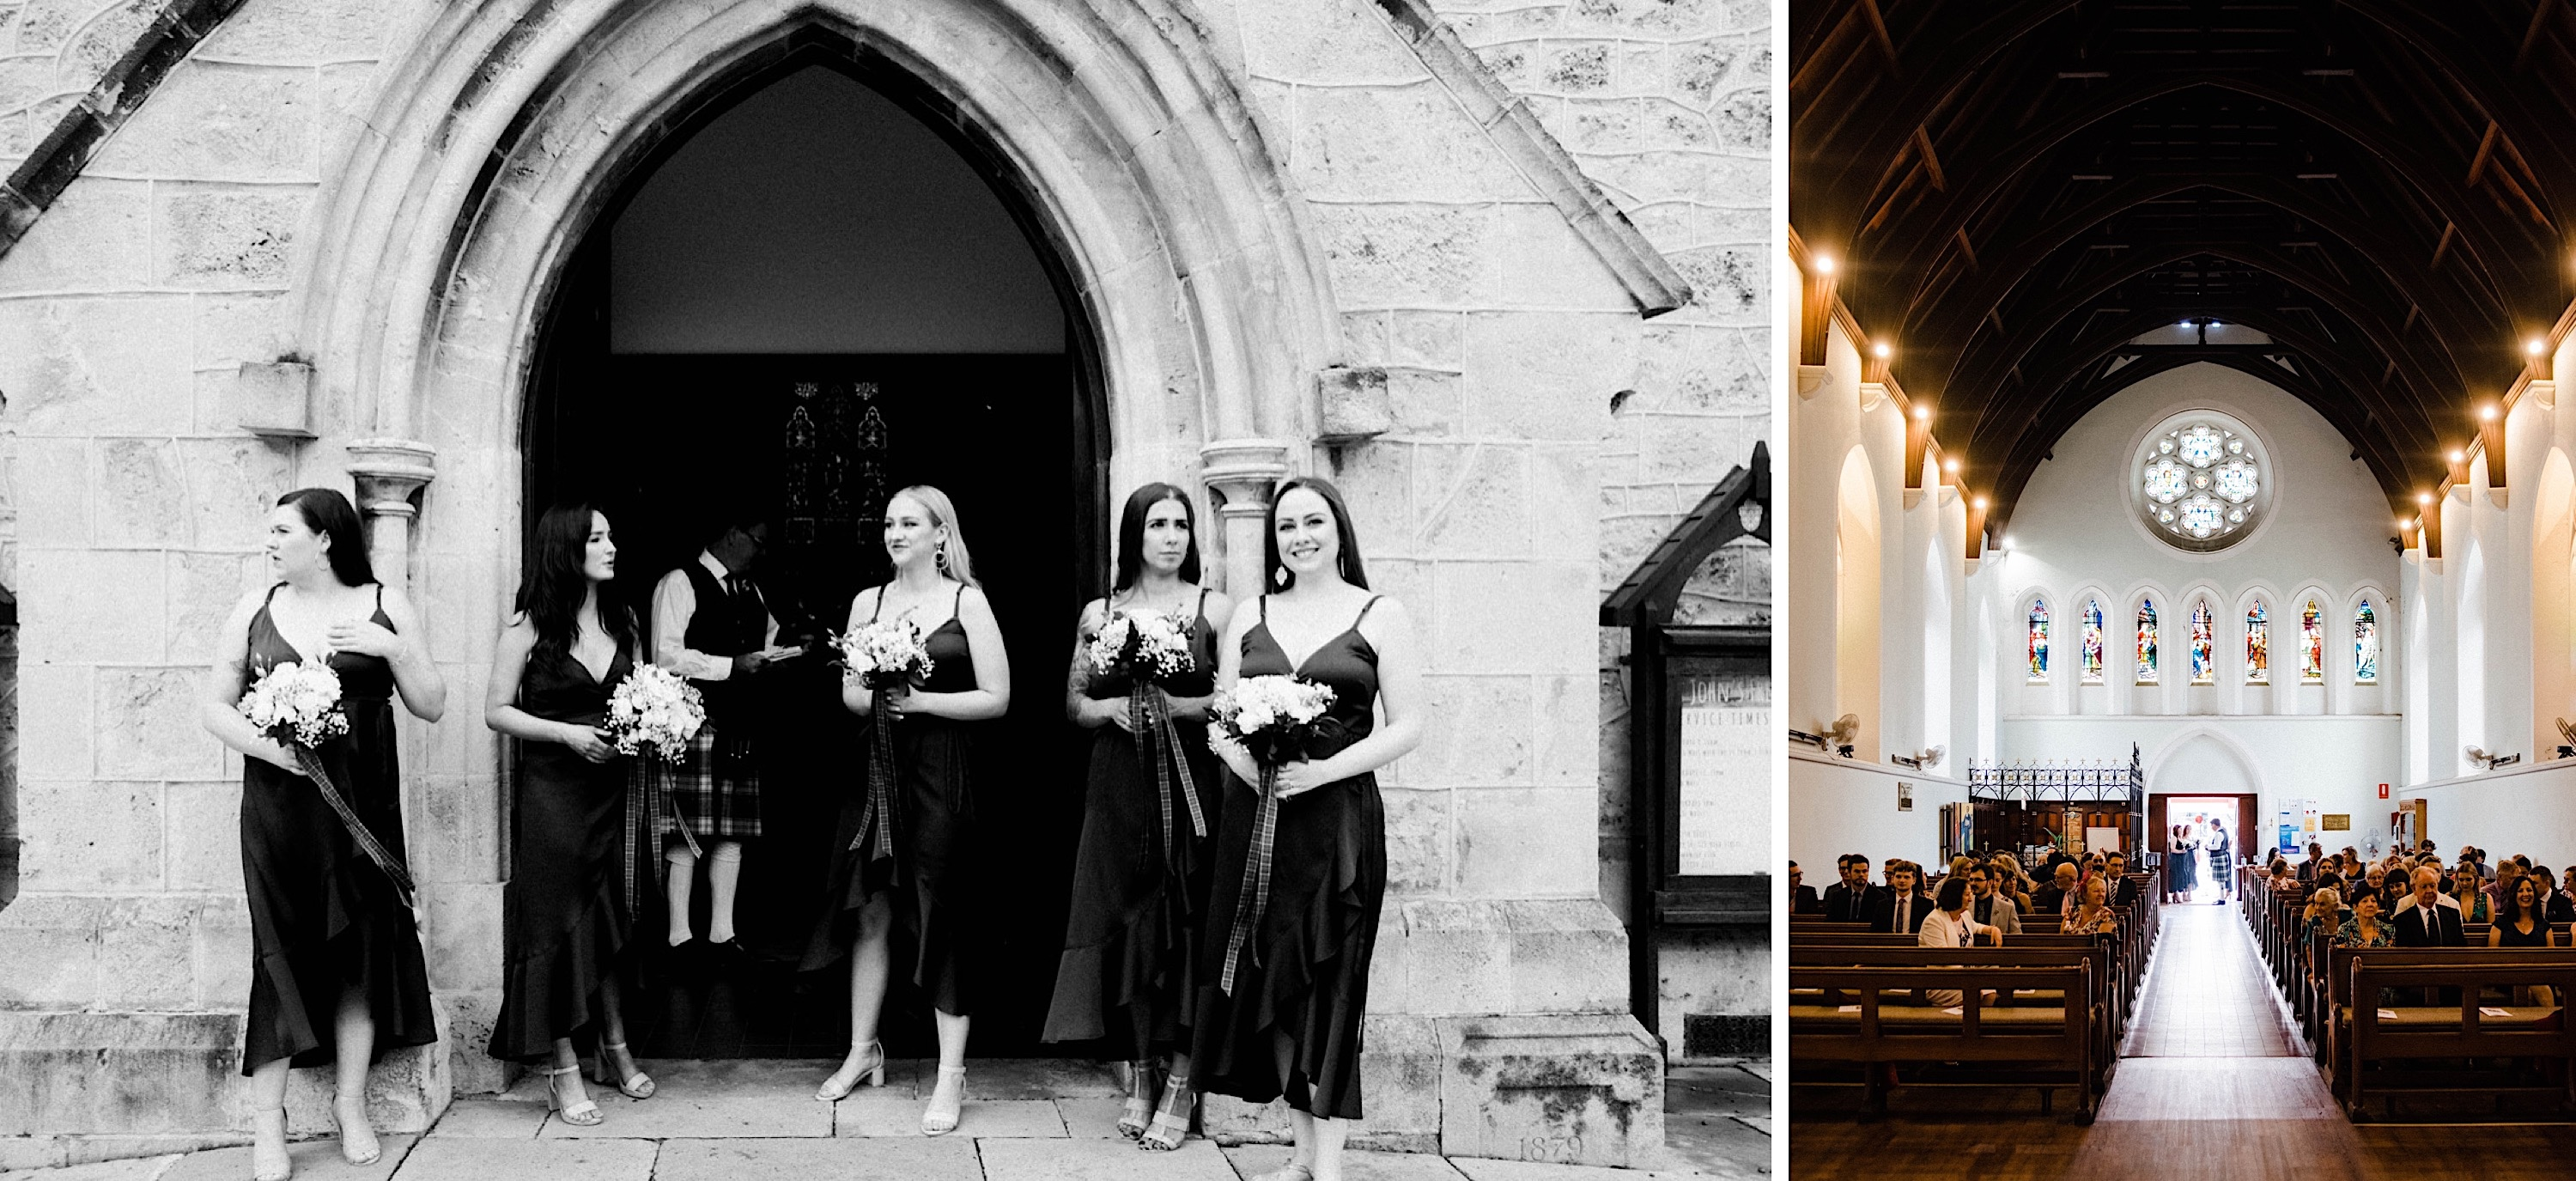 Documentary wedding photography of the bridesmaid's waiting for the bride to arrive outside the church, and of the interiors of St John's Anglican Church in Fremantle.